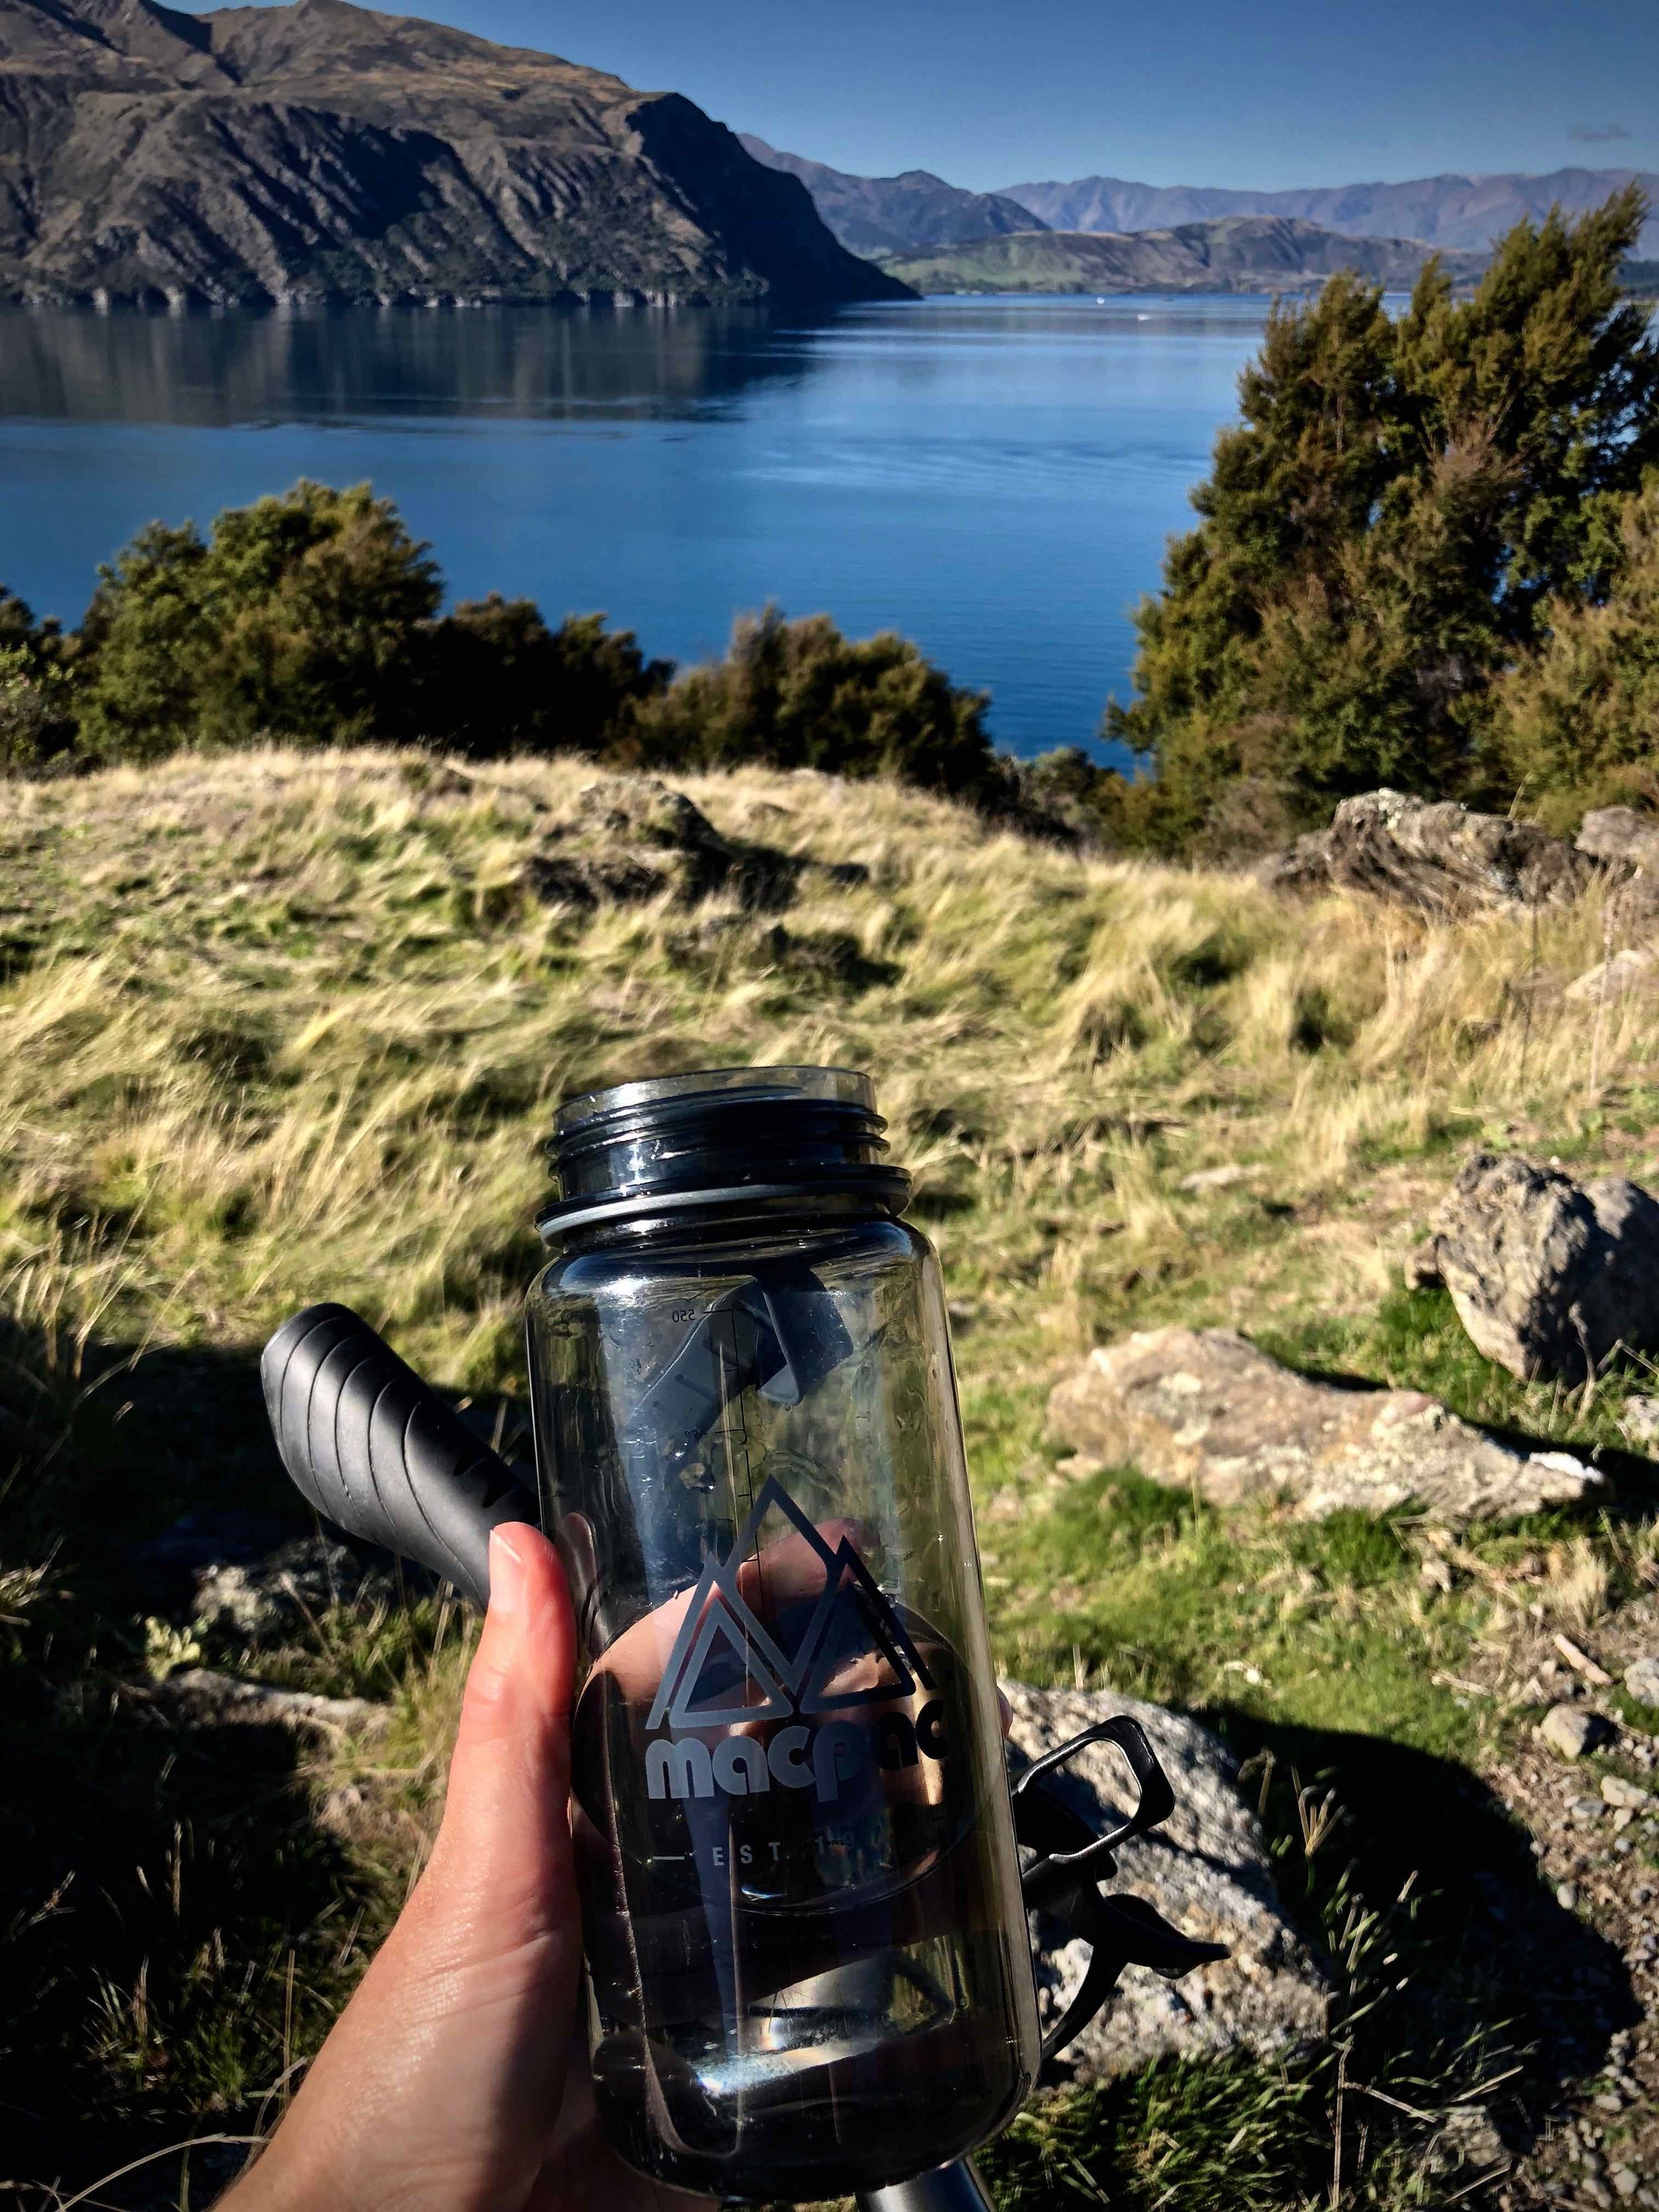 Macpac water bottle, perfectly lens sized.